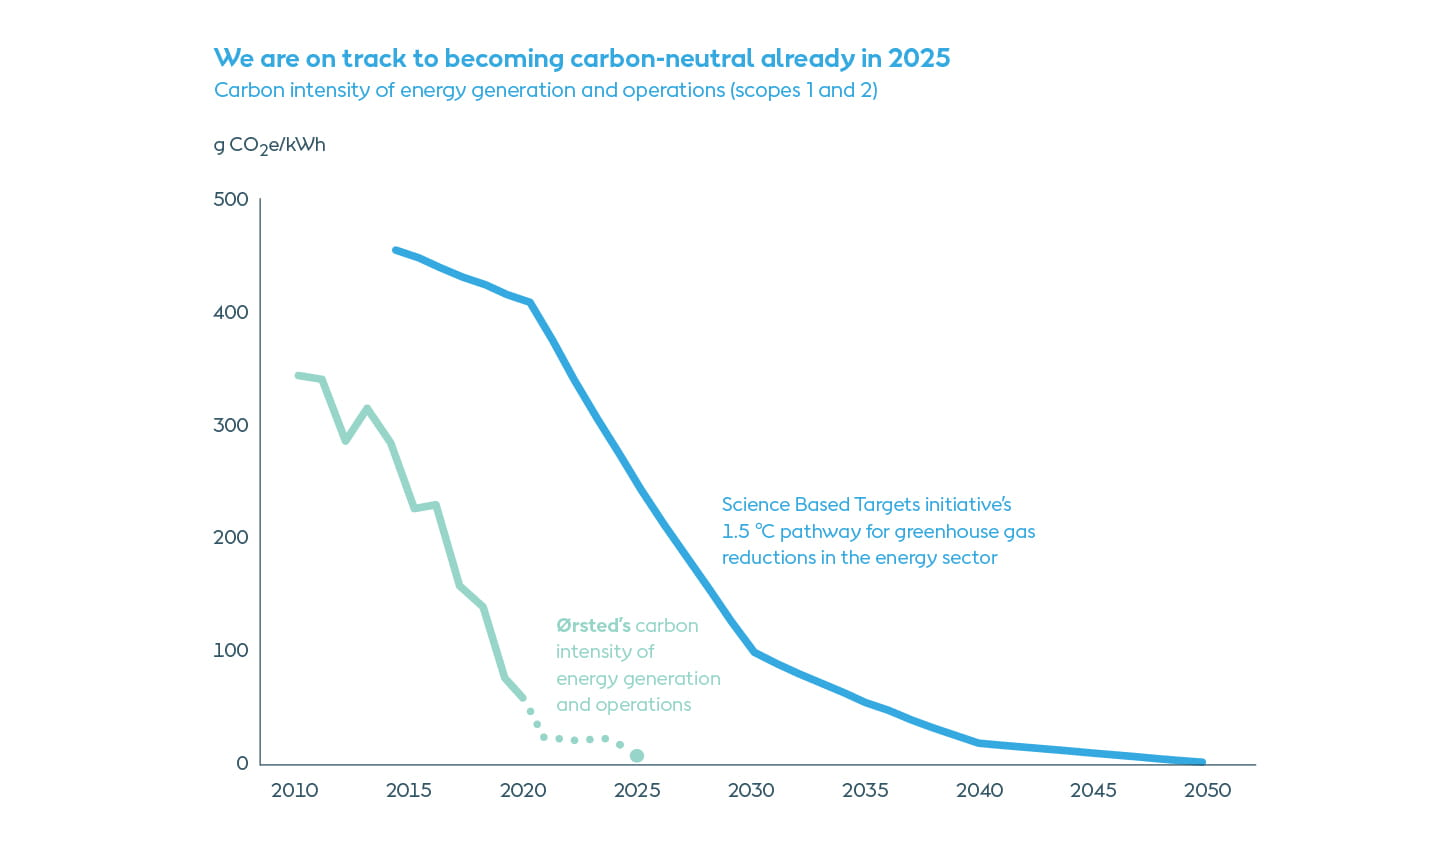 Ørsted actual carbon intensity